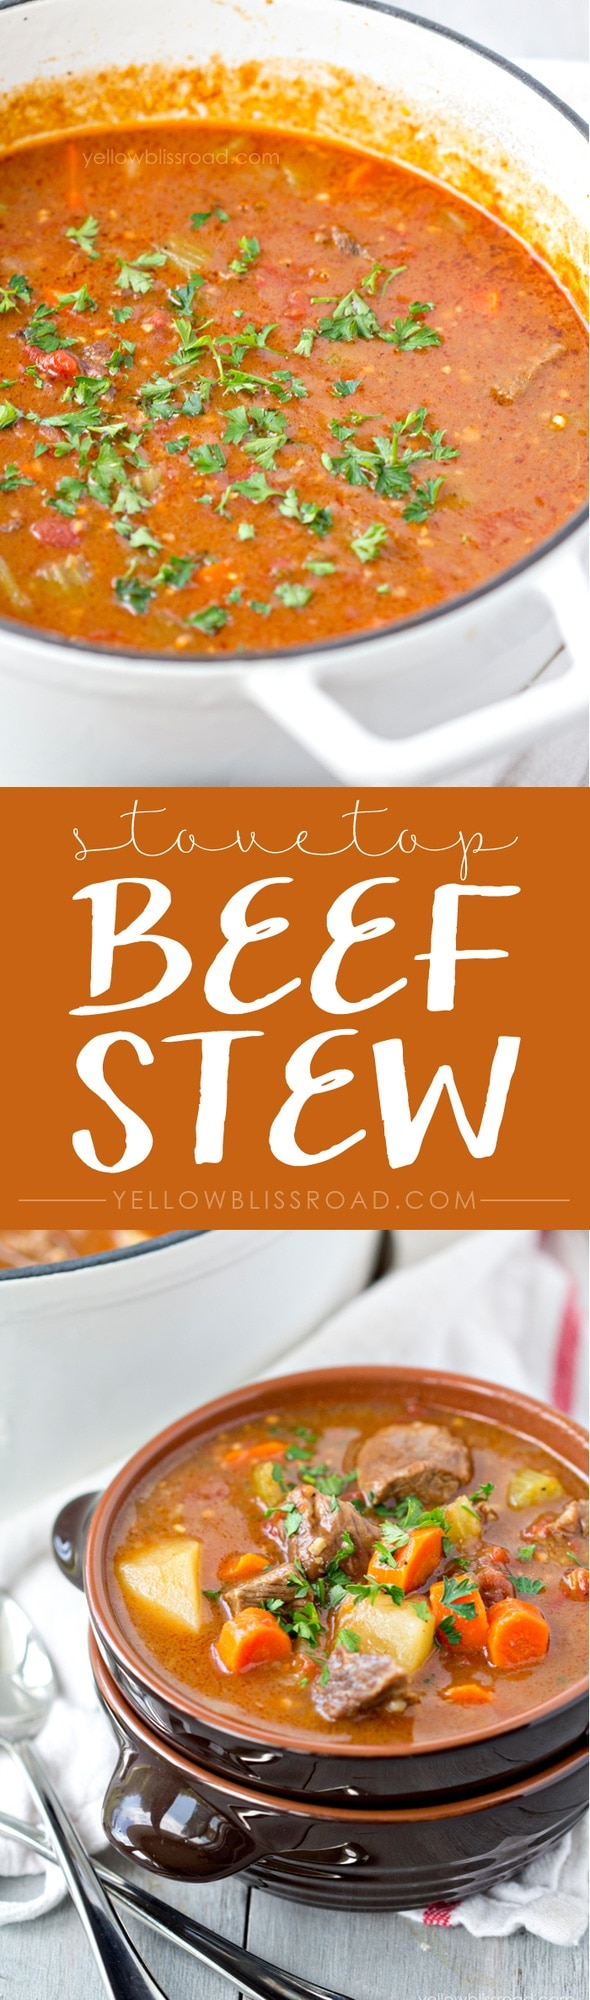 Simple Stovetop Beef Stew - Perfect comfort food for a cold night!